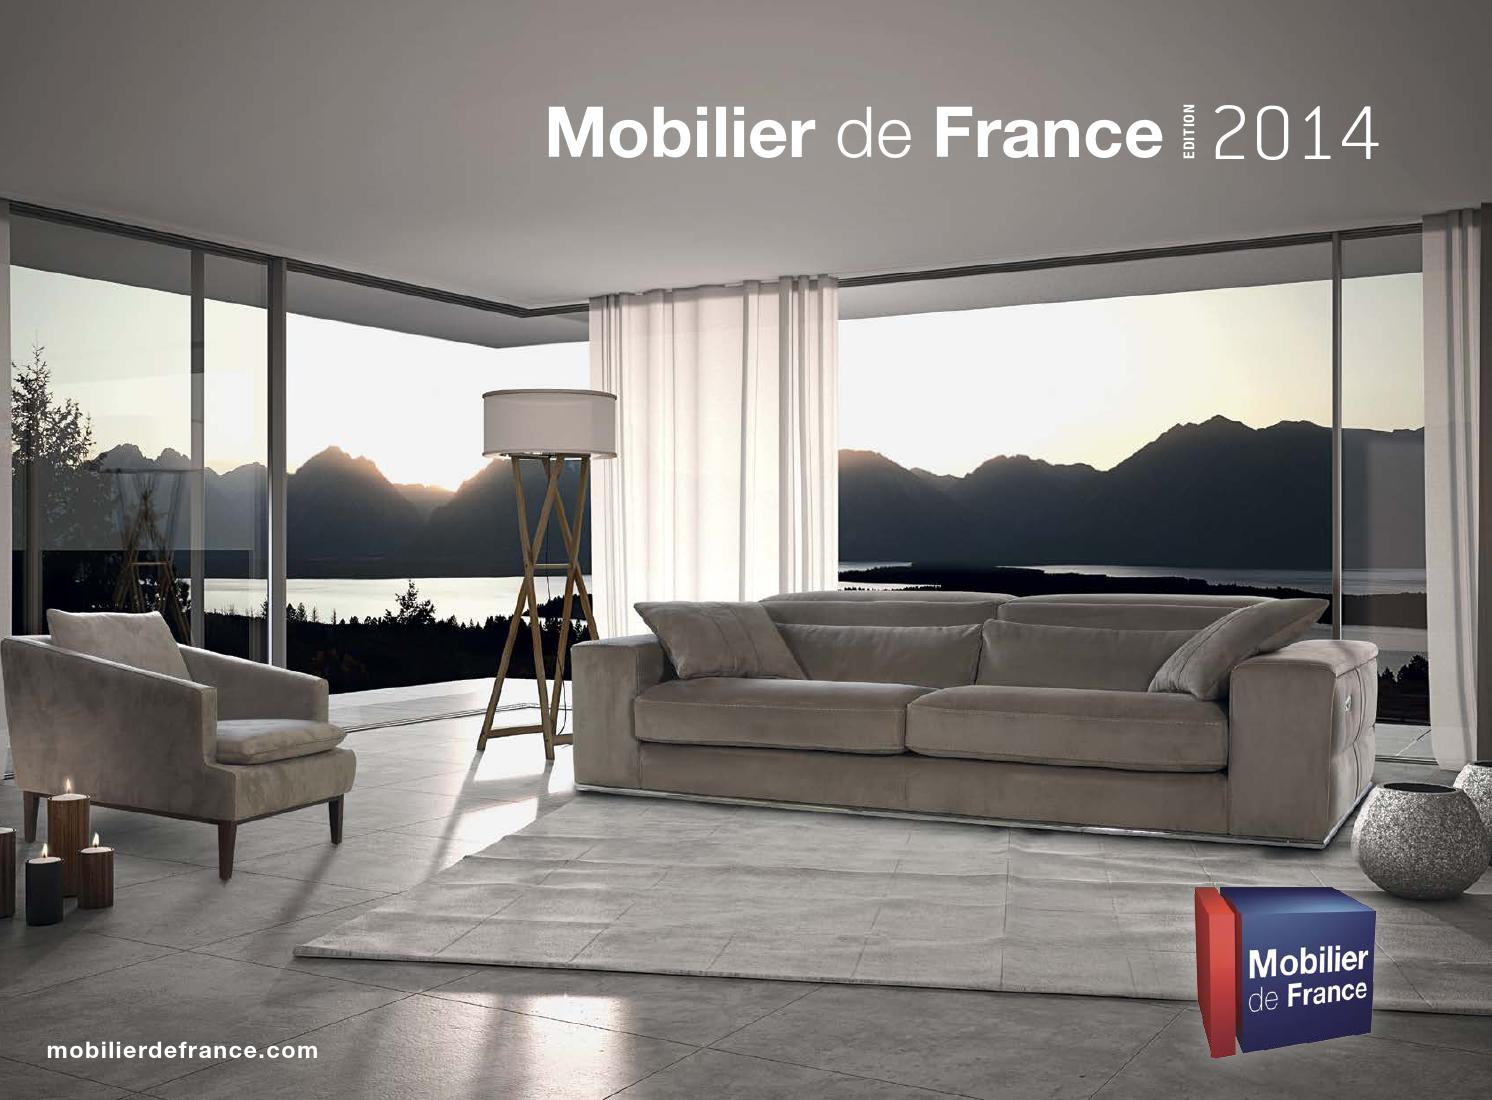 Mobilier France Catalogue Mobilier De France 2014 By Communication Issuu